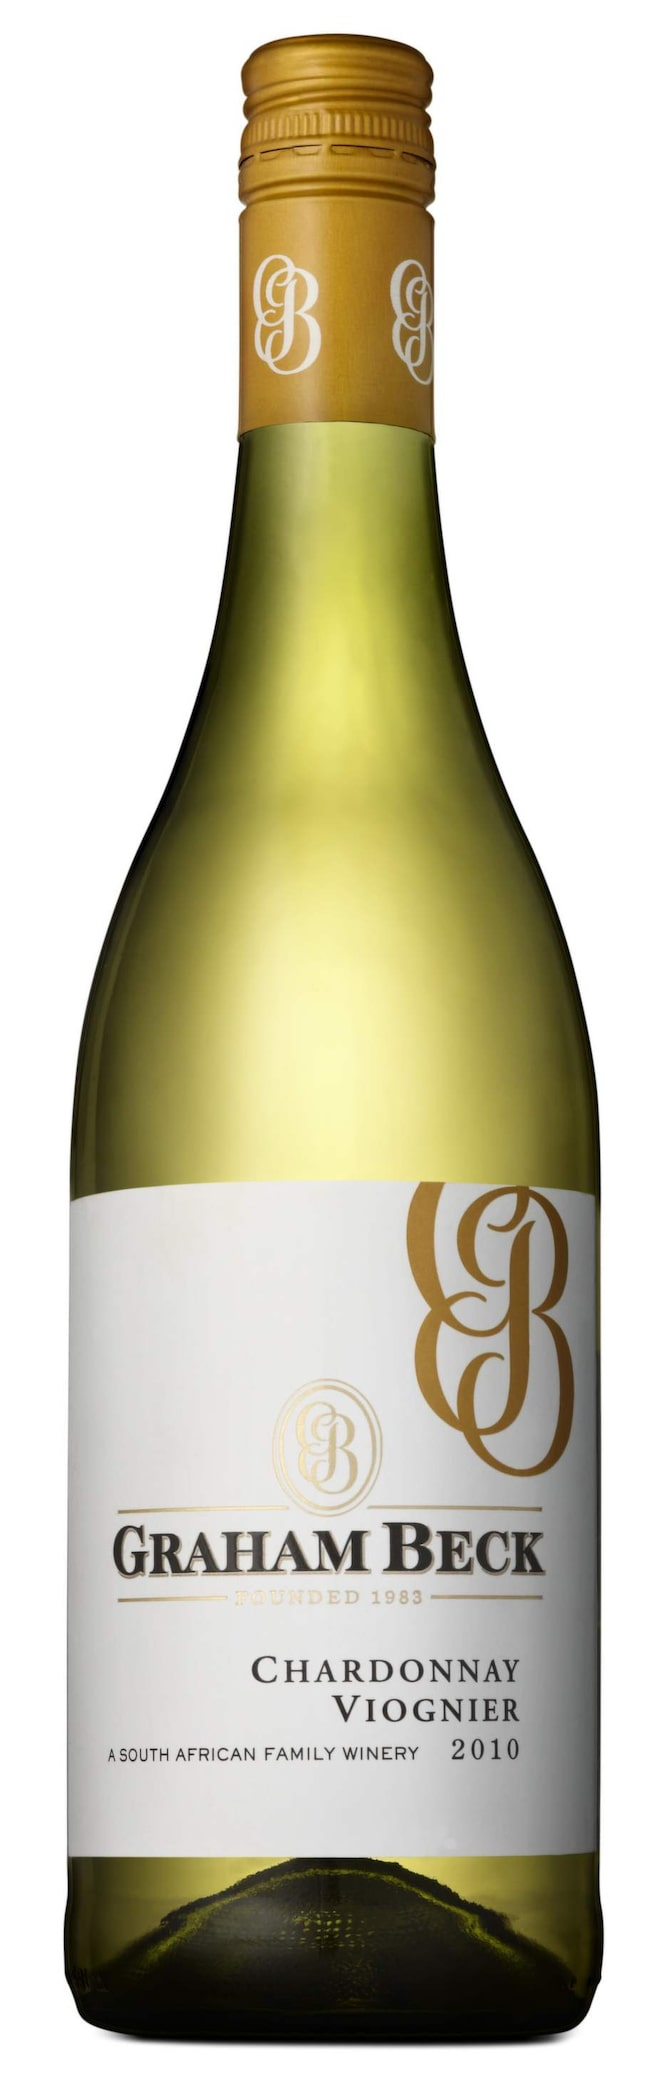 "Graham Beck ­Char­don­nay Viognier 2013 (15515) Western Cape, 67 kr<br><span class=""wasp-icon""></span><span class=""wasp-icon""></span><span class=""wasp-icon""></span><span class=""wasp-icon""></span>"